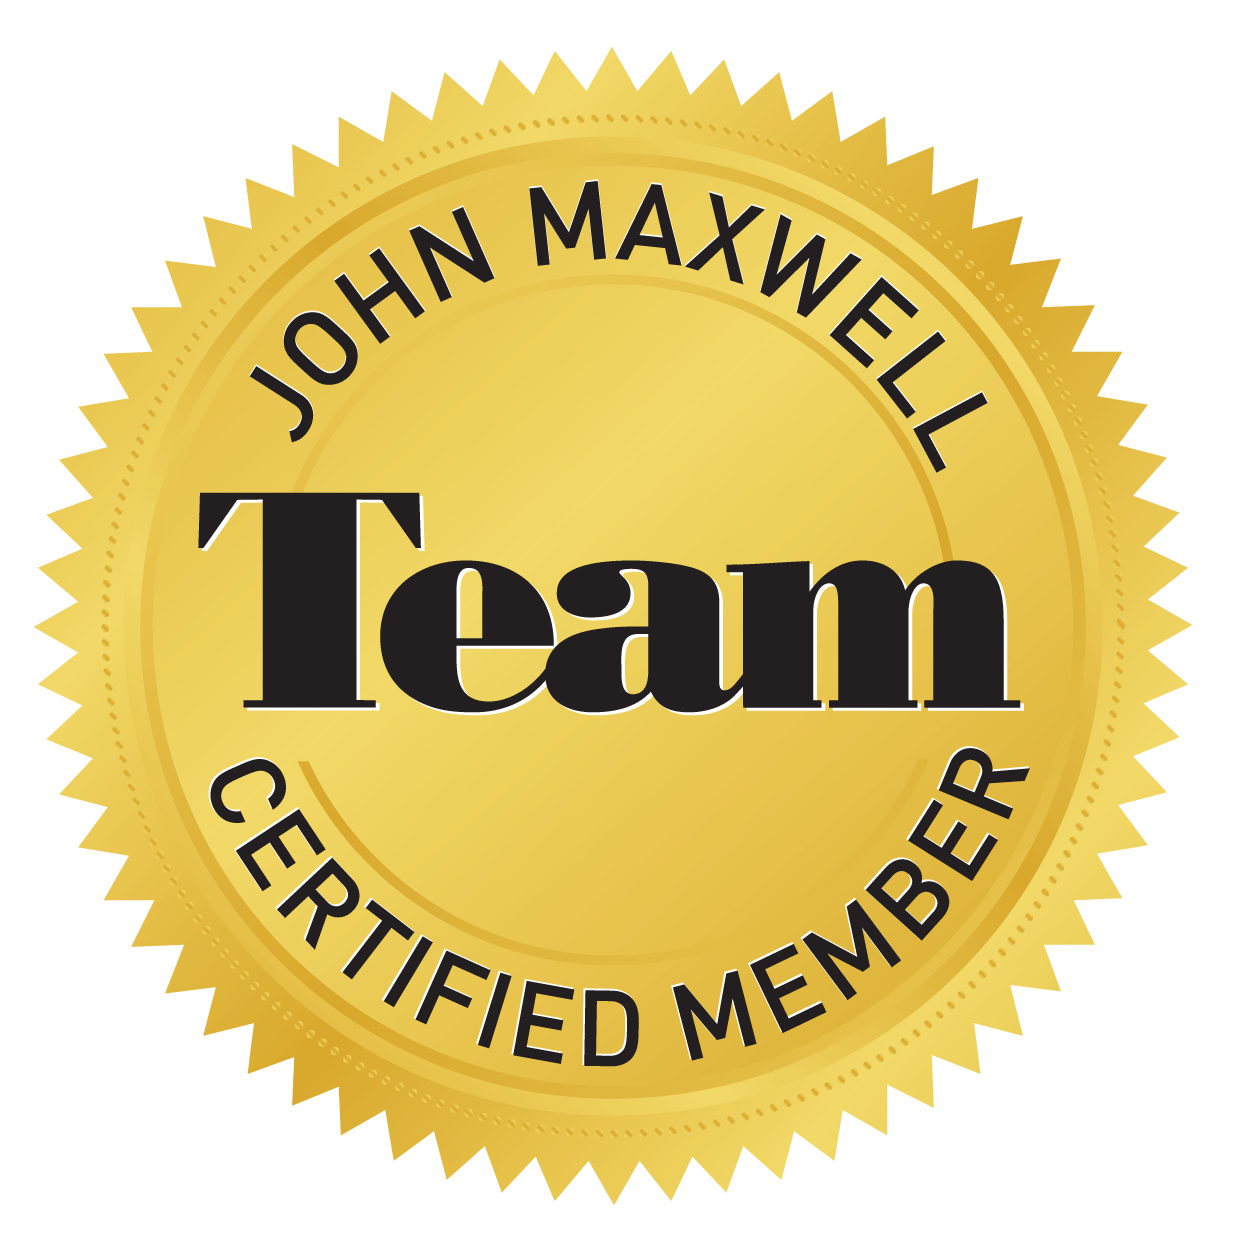 "Mr. <span itemprop=""name"">David Thomas</span> is a John Maxwell Team Certified Speaker"